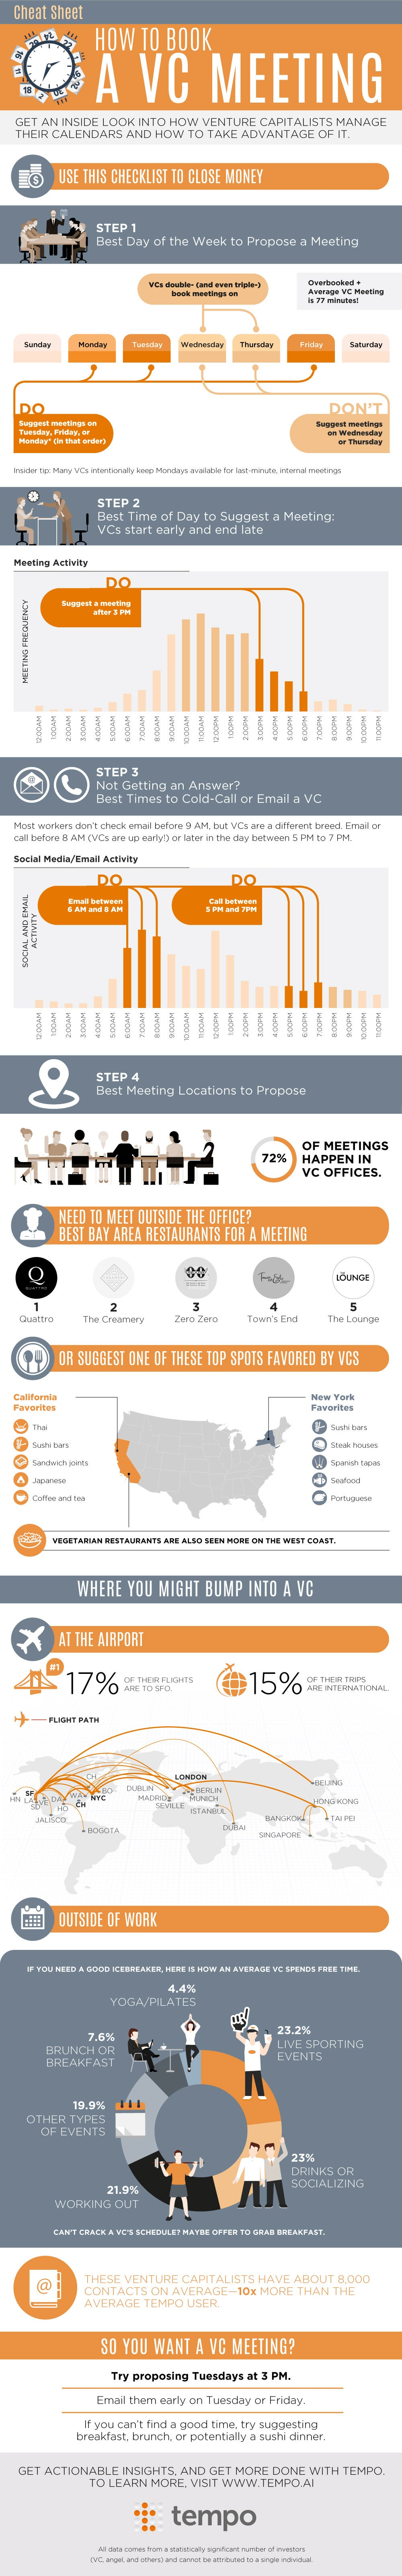 A VC Meeting (Infographic)